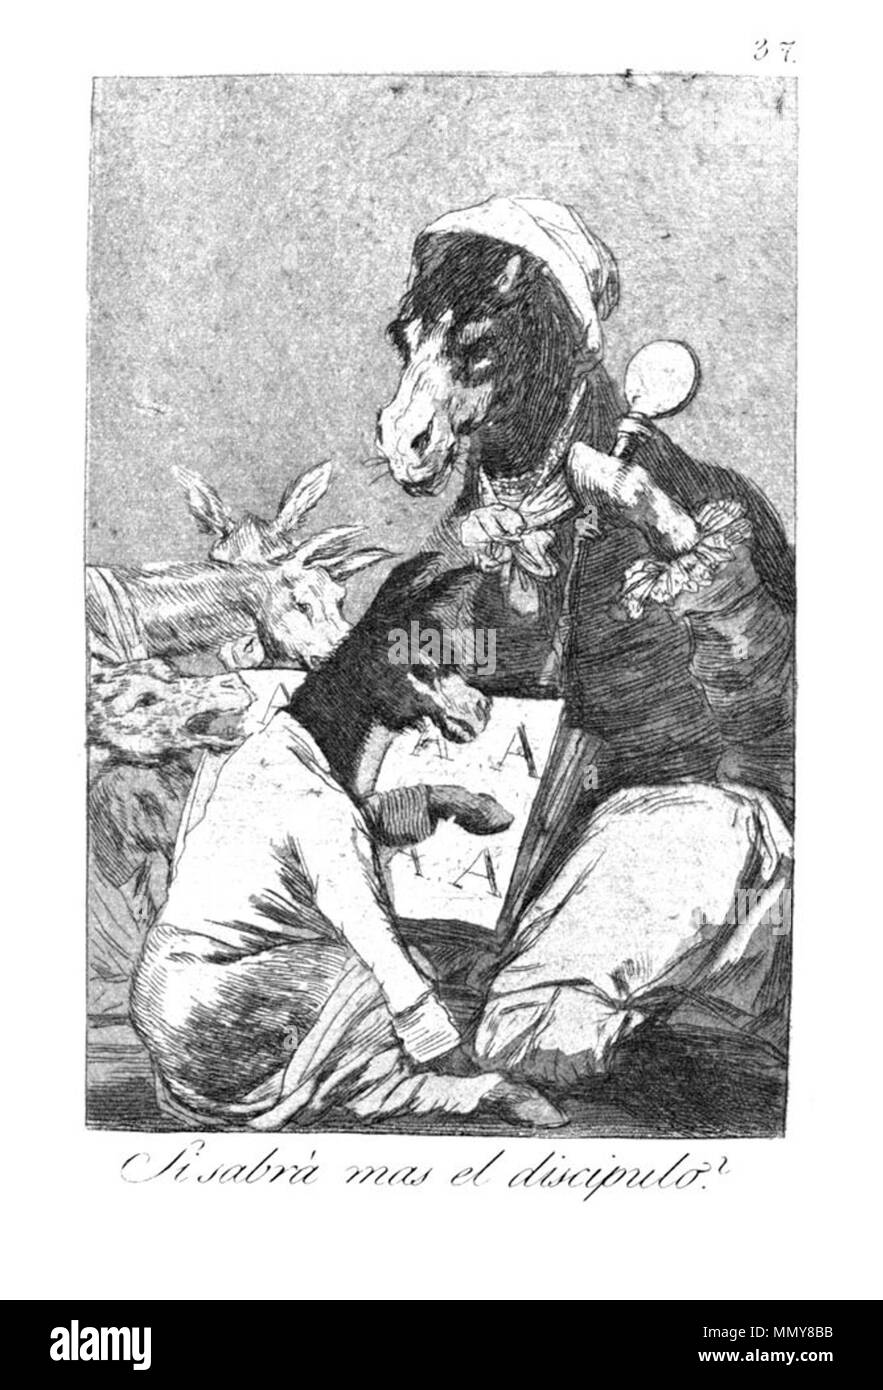 . Los Caprichos is a set of 80 aquatint prints created by Francisco Goya for release in 1799.  . 1799.   Francisco Goya (1746–1828)   Alternative names Francisco Goya Lucientes, Francisco de Goya y Lucientes, Francisco José Goya Lucientes  Description Spanish painter, printmaker, lithographer, engraver and etcher  Date of birth/death 30 March 1746 16 April 1828  Location of birth/death Fuendetodos Bordeaux  Work location Madrid, Zaragoza, Bordeaux  Authority control  : Q5432 VIAF:?54343141 ISNI:?0000 0001 2280 1608 ULAN:?500118936 LCCN:?n79003363 NLA:?36545788 WorldCat Goya - Caprichos (37 - Stock Image